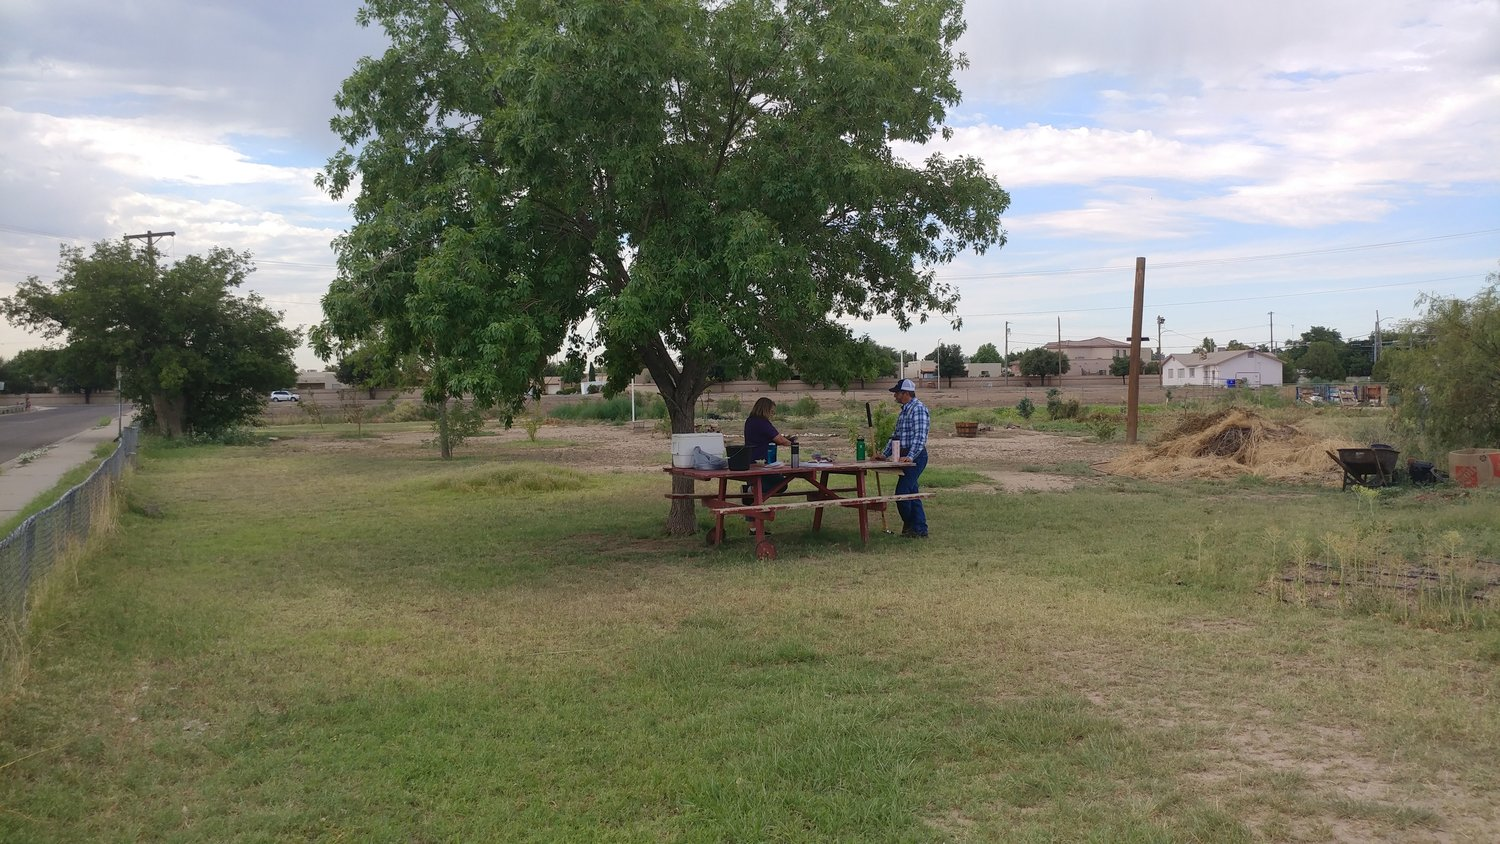 New Mexico State University/Doña Ana County Cooperative Extension Service Ag/Horticulture Agent and county master gardener program coordinator Jeff Anderson and urban garden volunteer Nancy Tipton chat at a picnic table beneath an ash tree at the urban garden on El Paseo Road near Las Cruces High School.